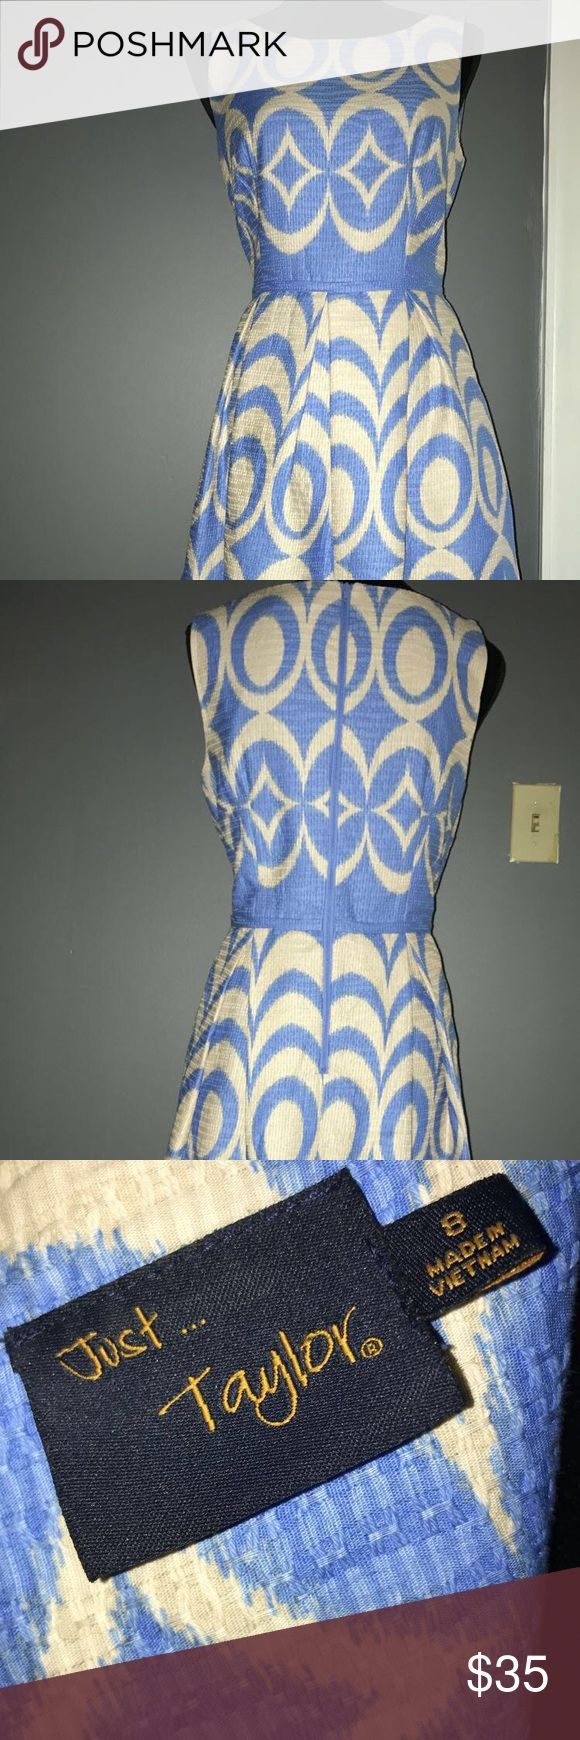 JUST TAYLOR Women's Dress Beautiful and elegant blue and cream dress with a fun pattern, fit and flare with side pockets.  Perfect for a wedding or any formal occasion. Dress is in great condition Dresses Midi